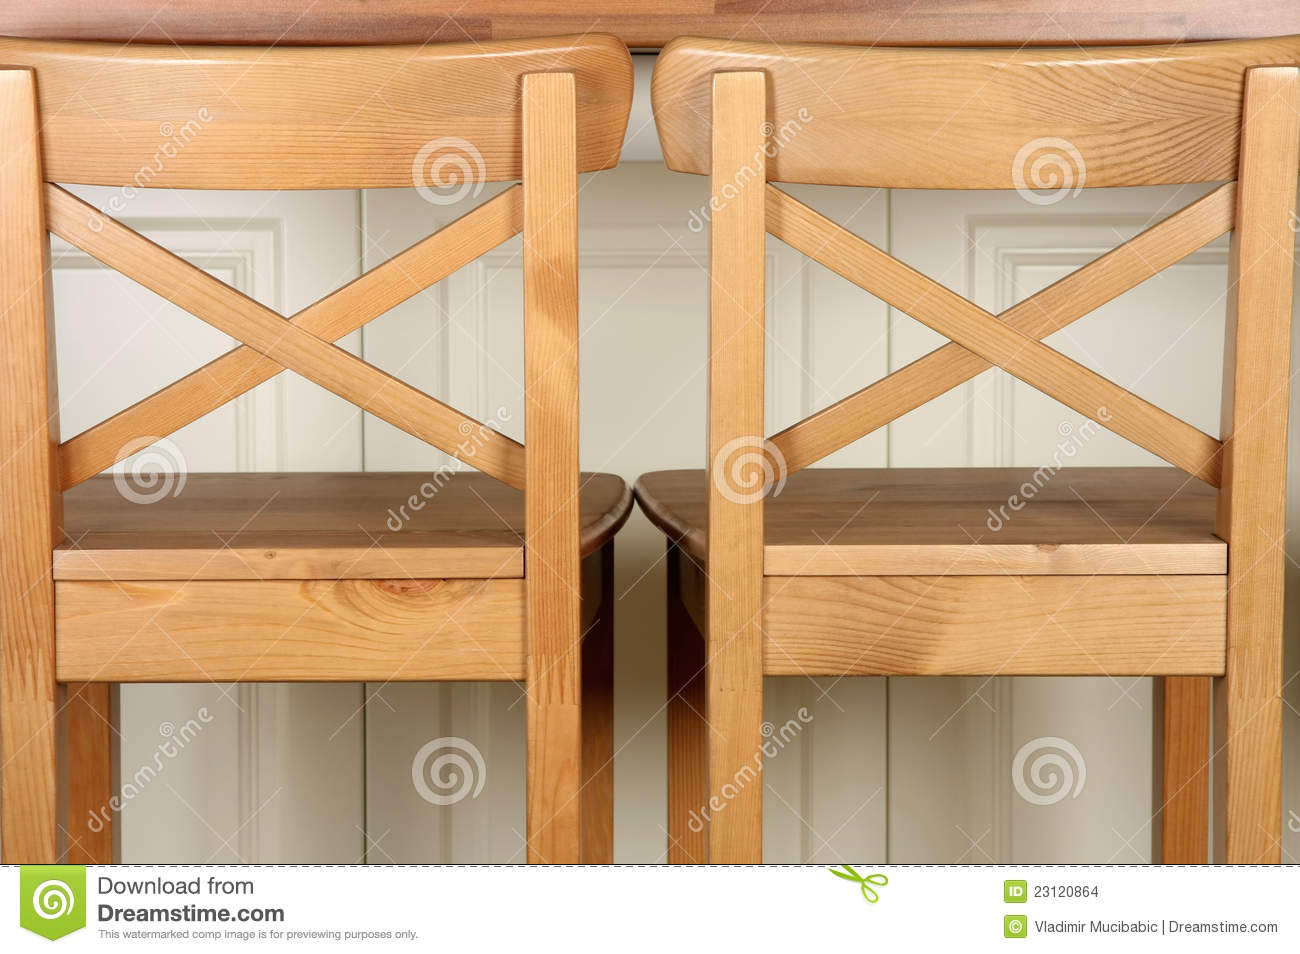 Royalty-Free Stock Photo. Download Wooden Bar Stool And Kitchen ... & Wooden Bar Stool And Kitchen Counter Stock Images - Image: 23120864 islam-shia.org